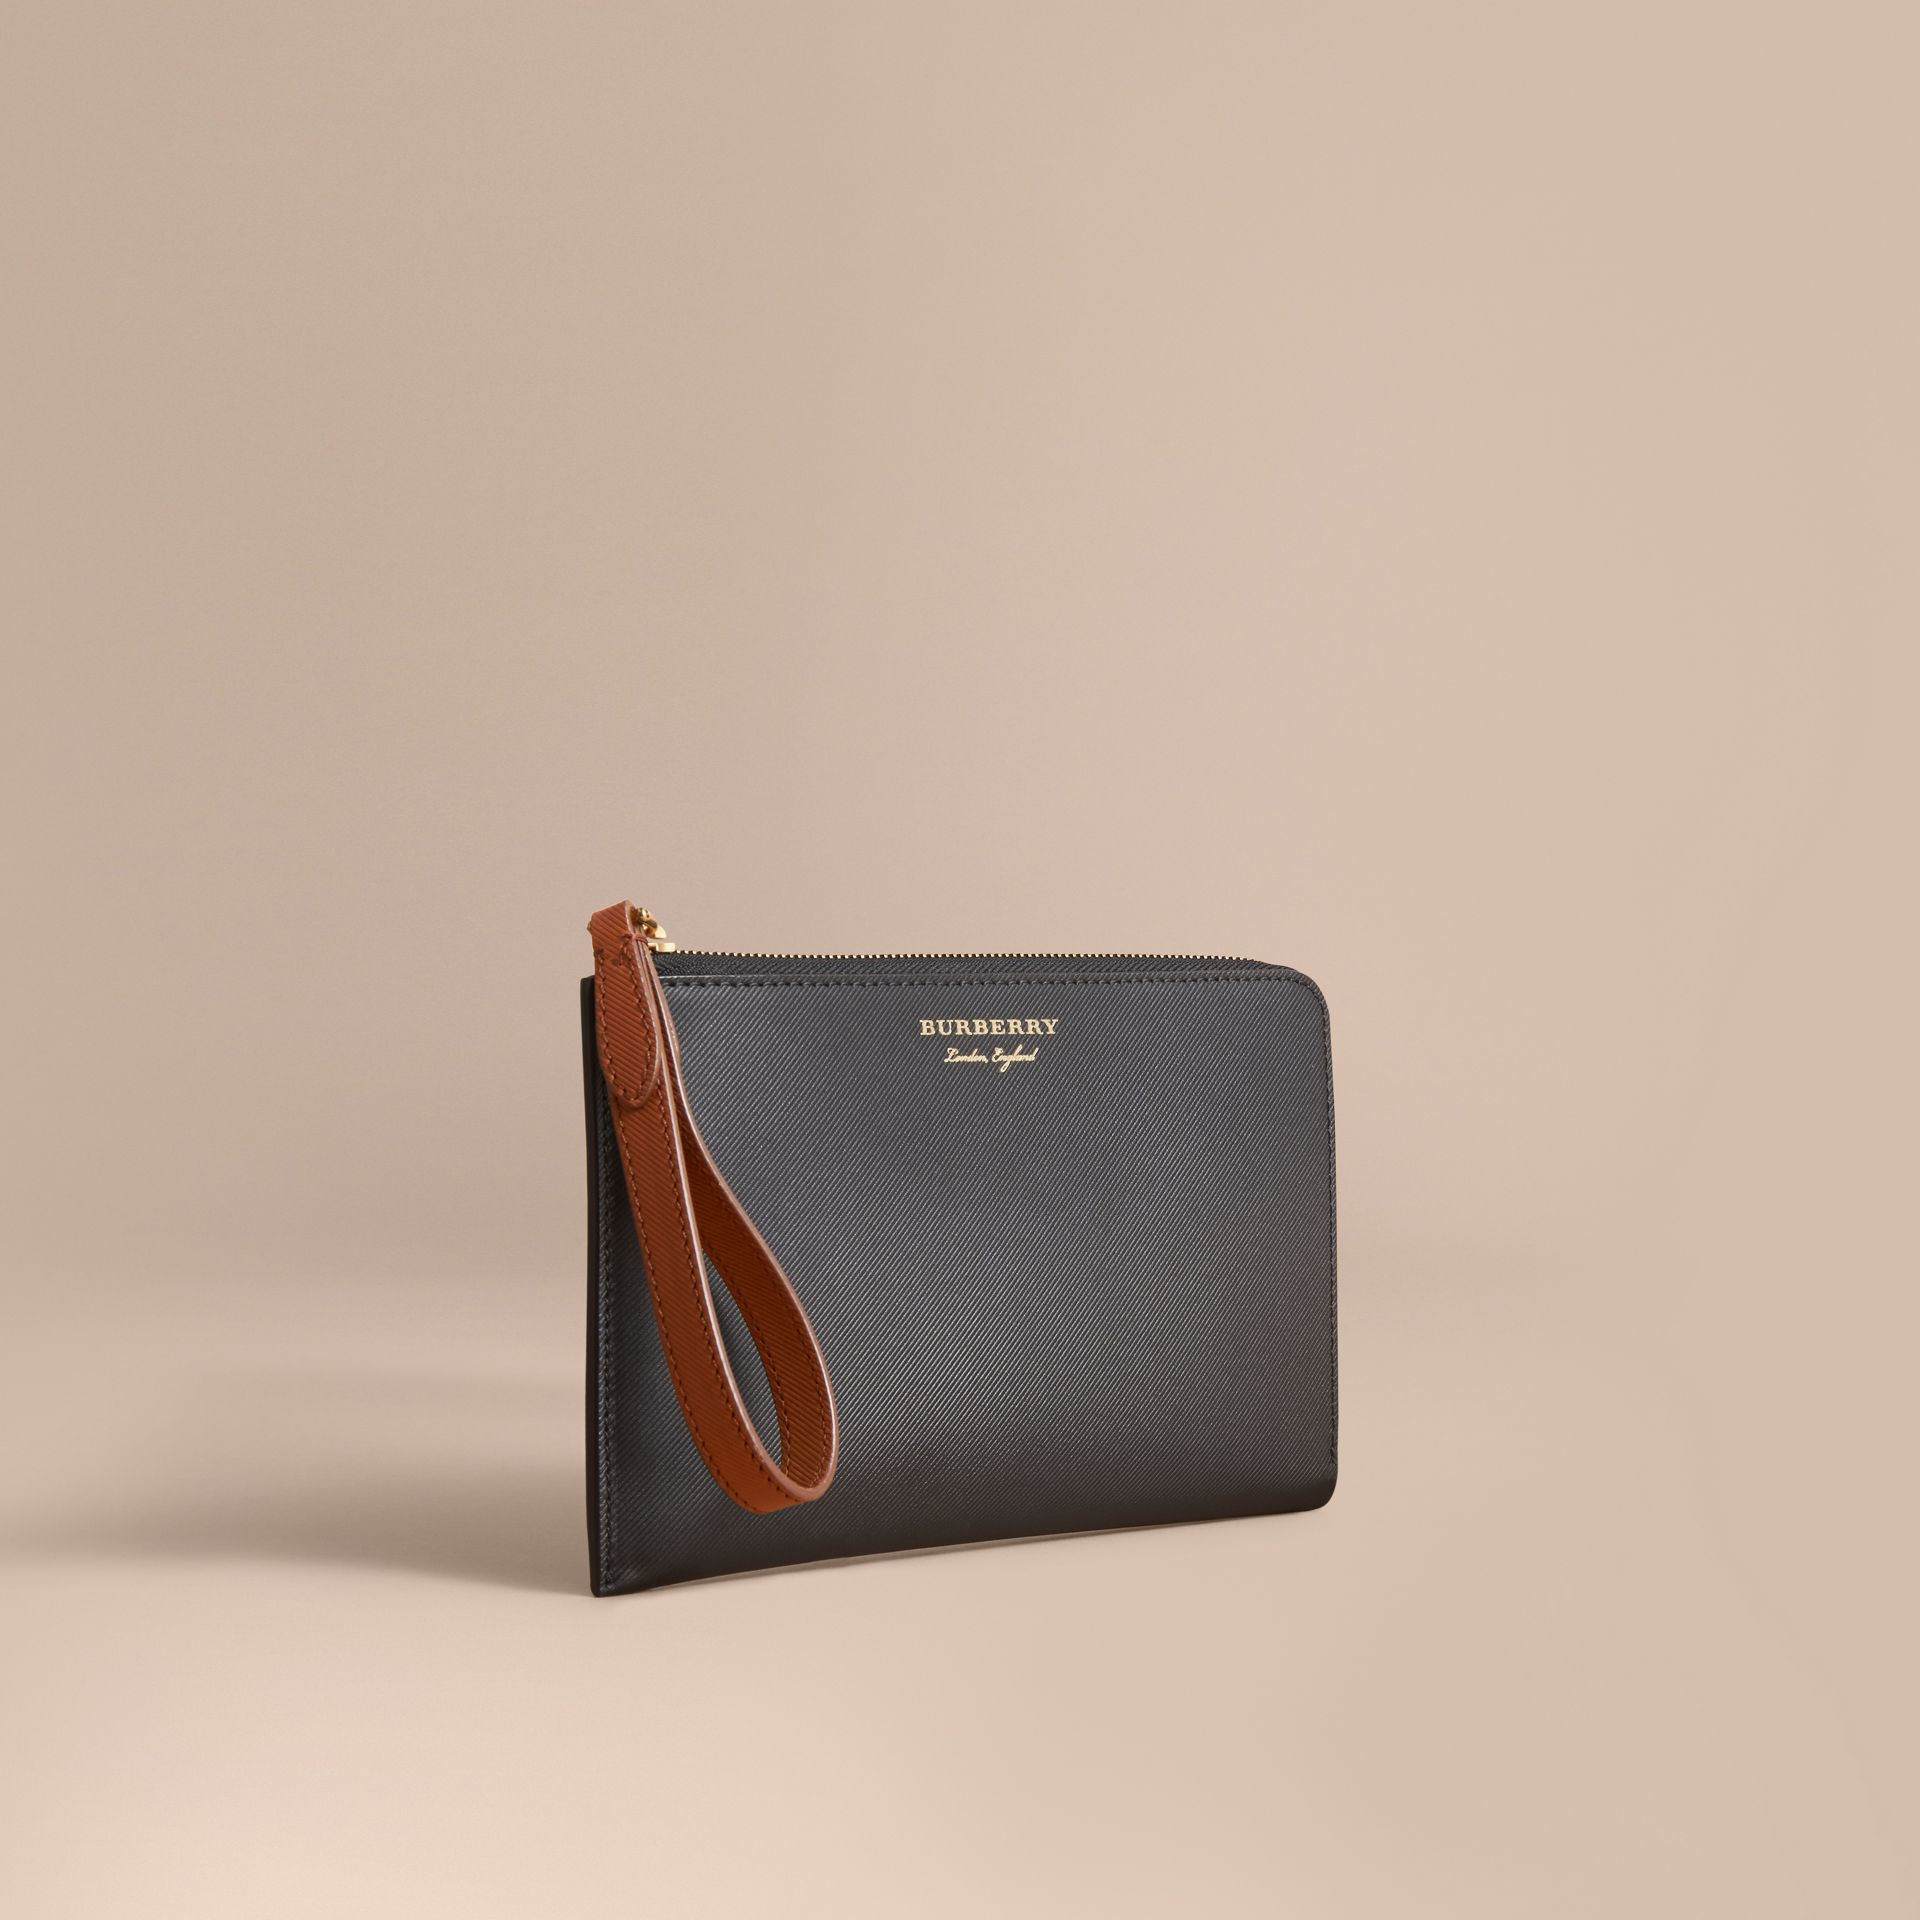 Two-tone Trench Leather Travel Wallet Black - gallery image 1